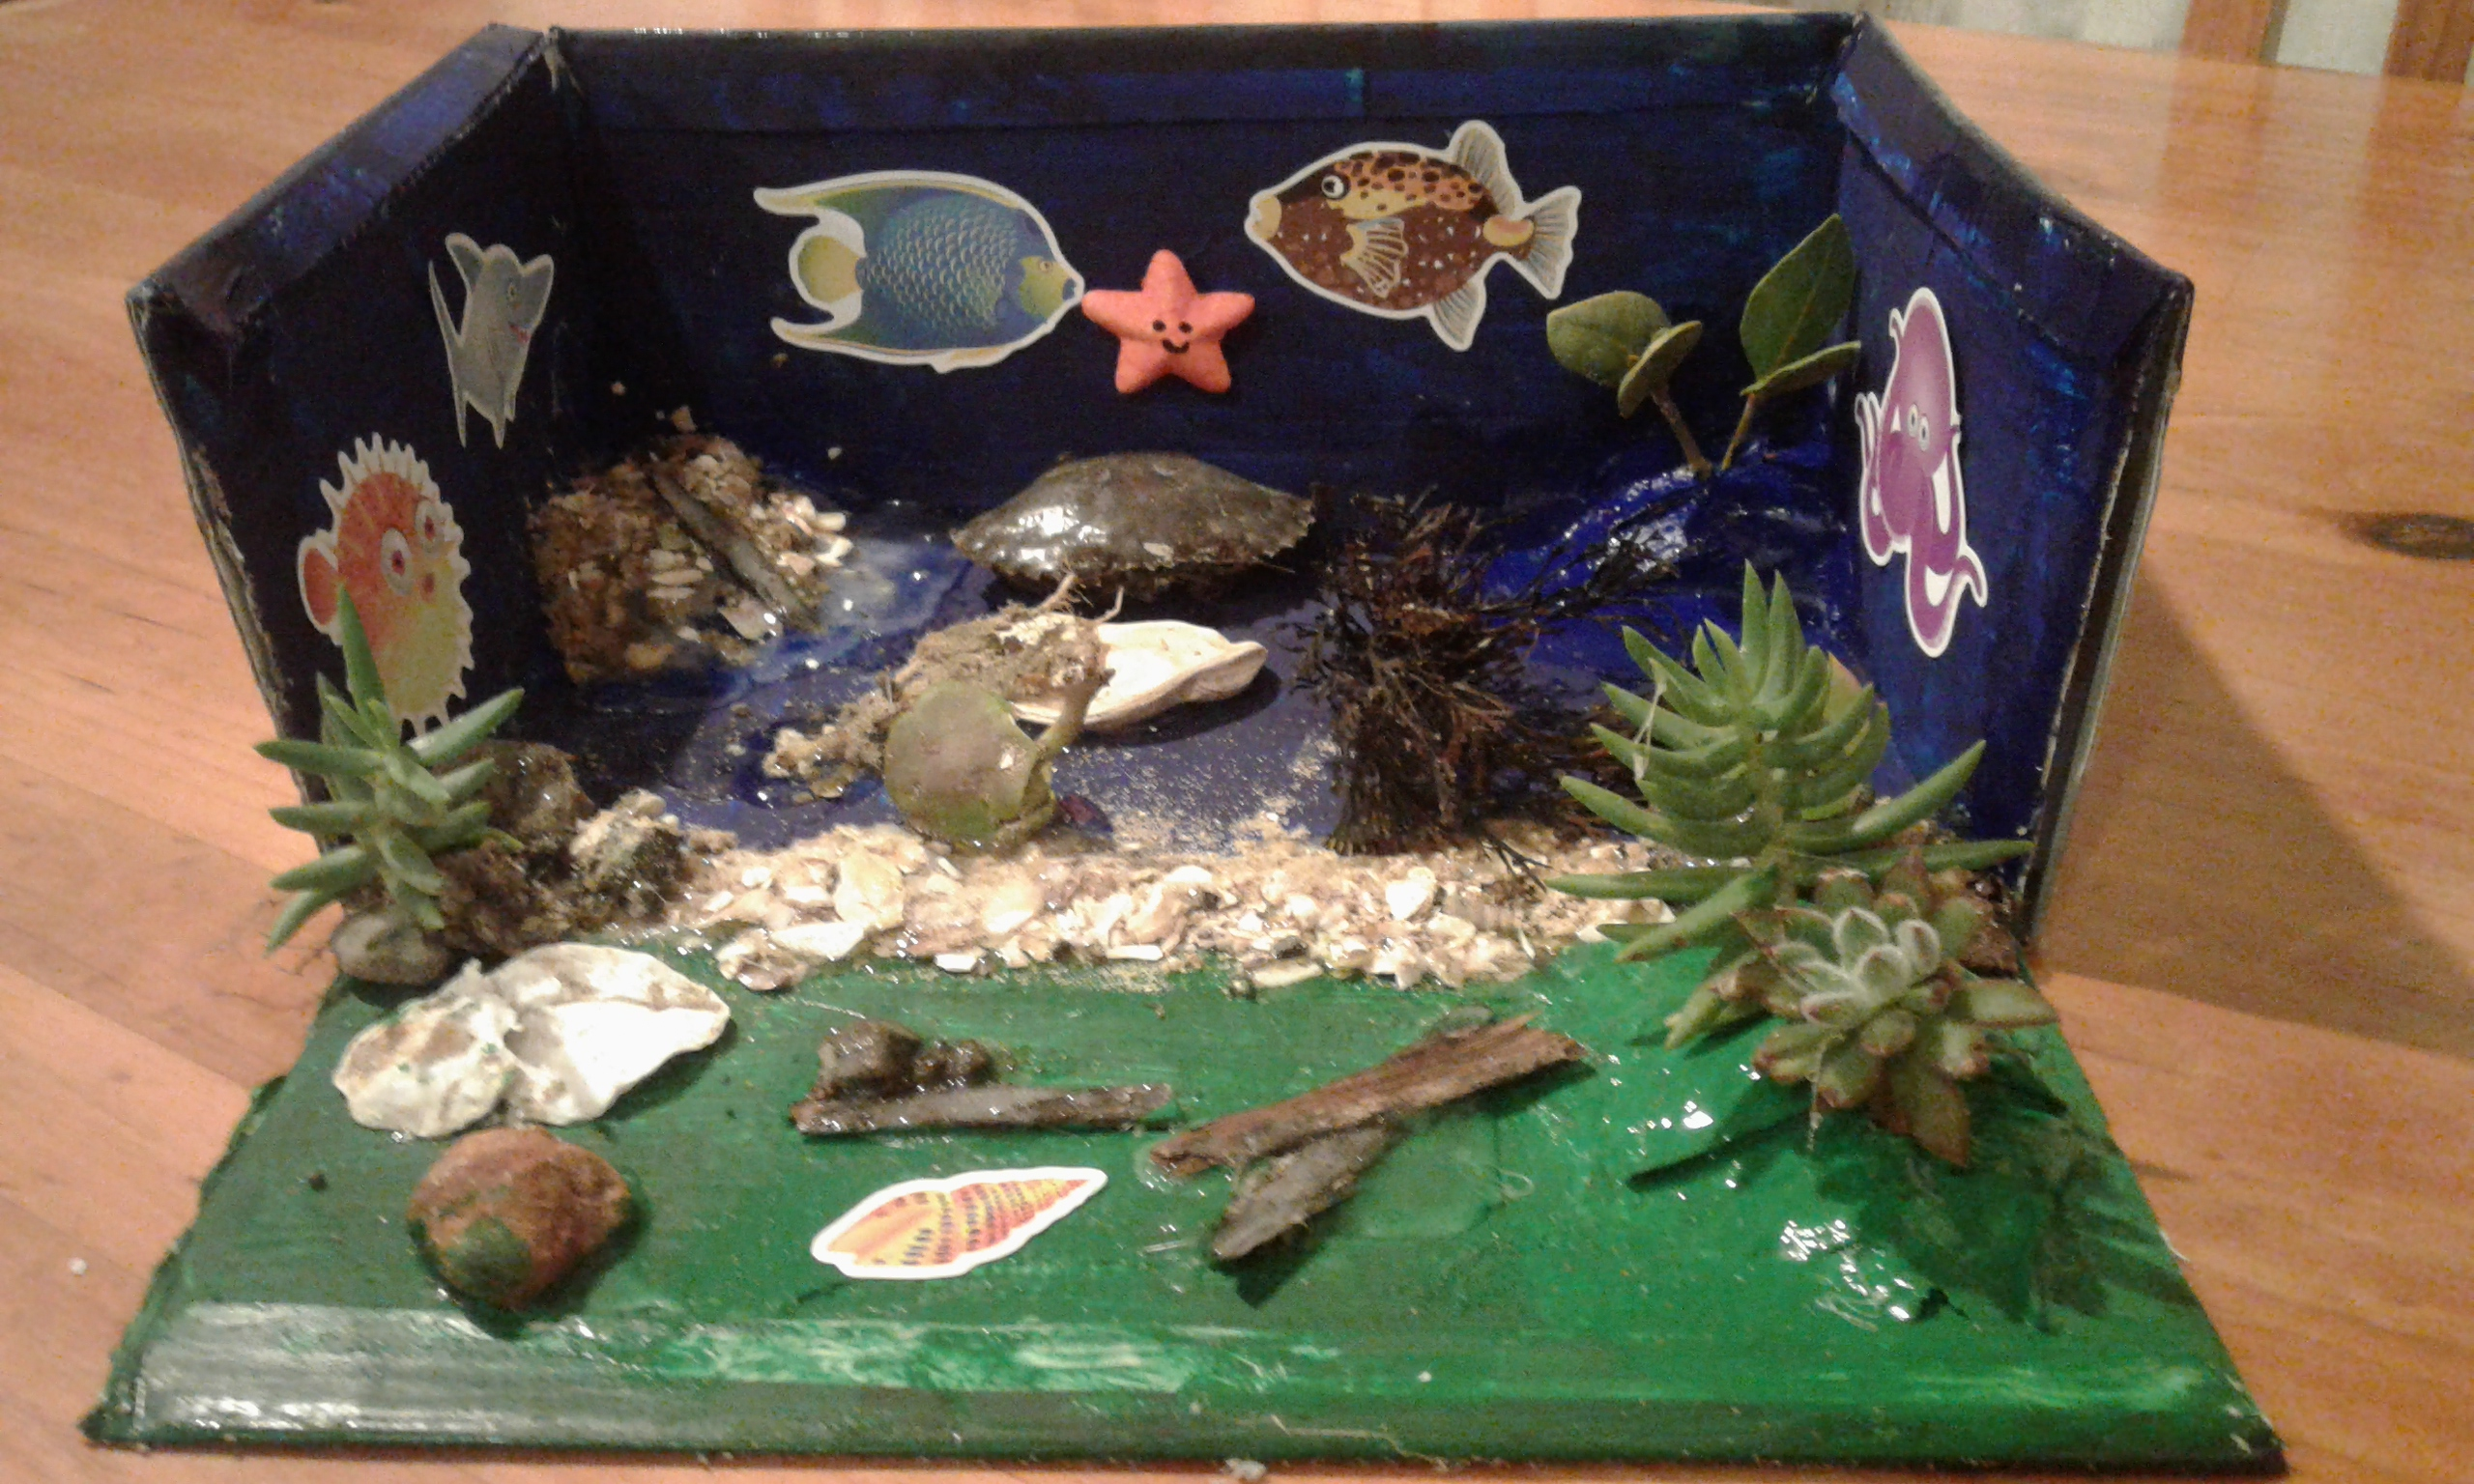 The shells, sand, mangroves, driftwood, crab etc. are all from the Kaipara Harbour where we live. By Sam